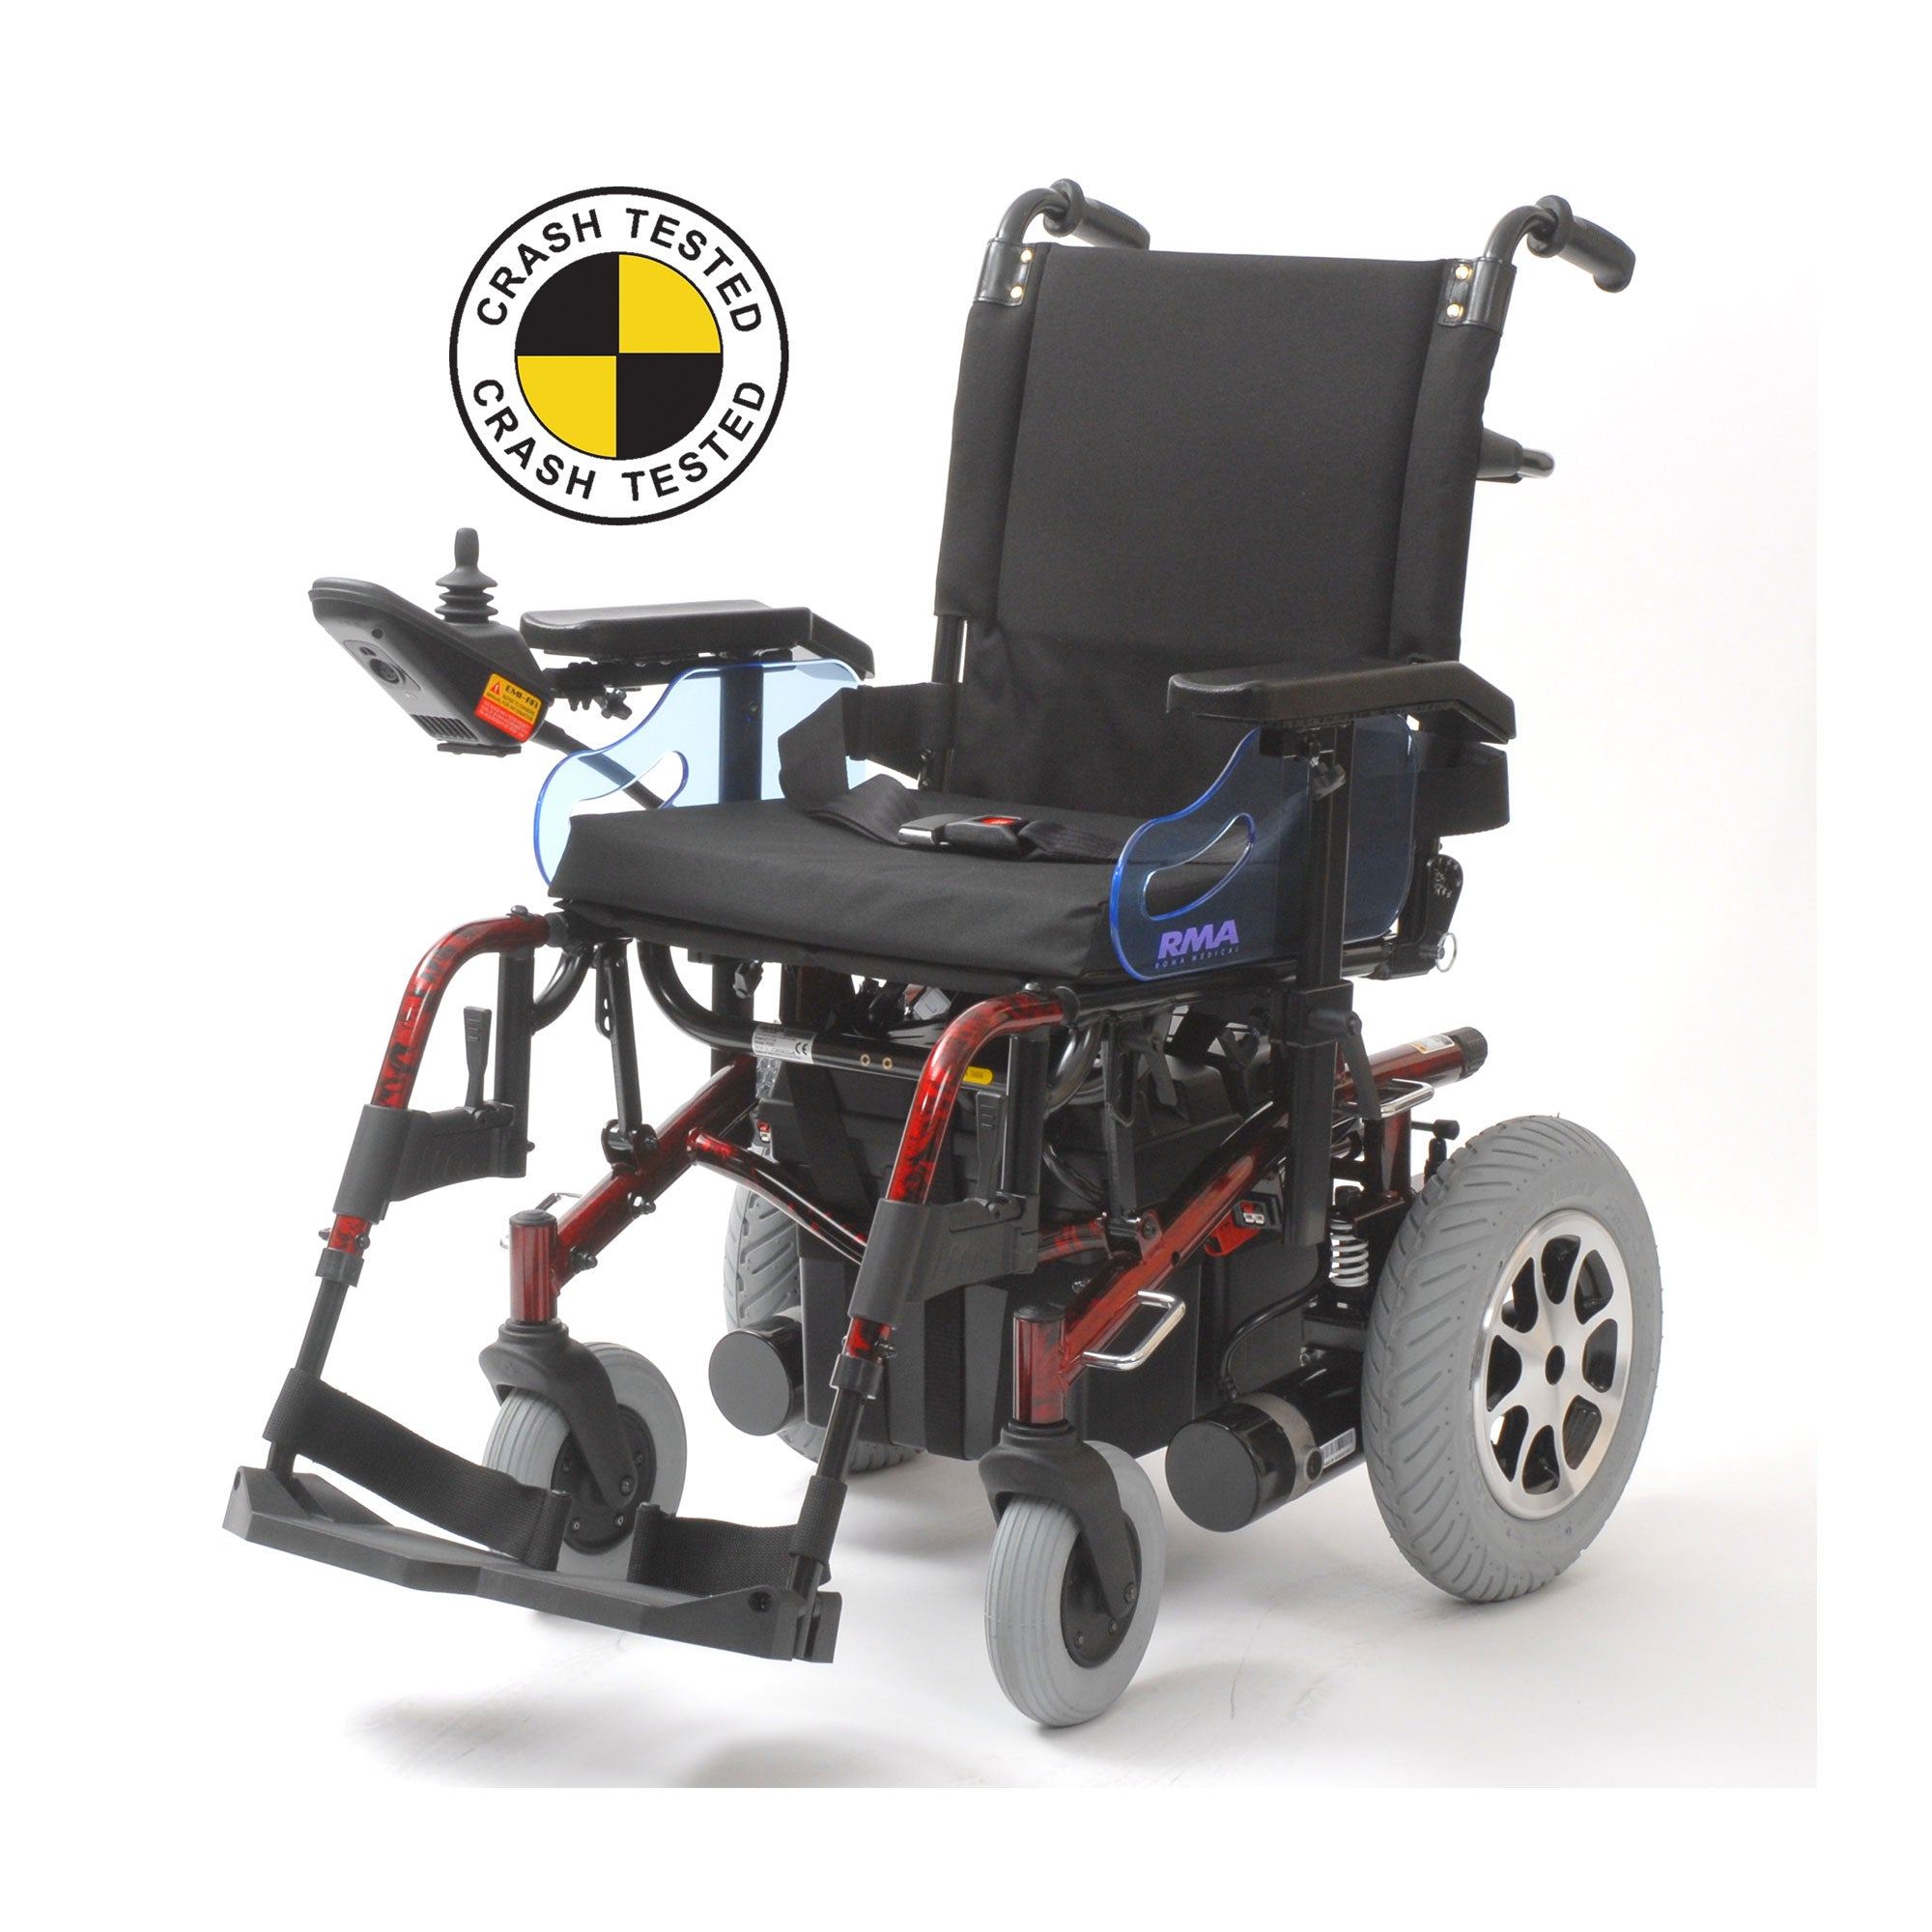 Roma Marbella Comfort 4mph Power Chair